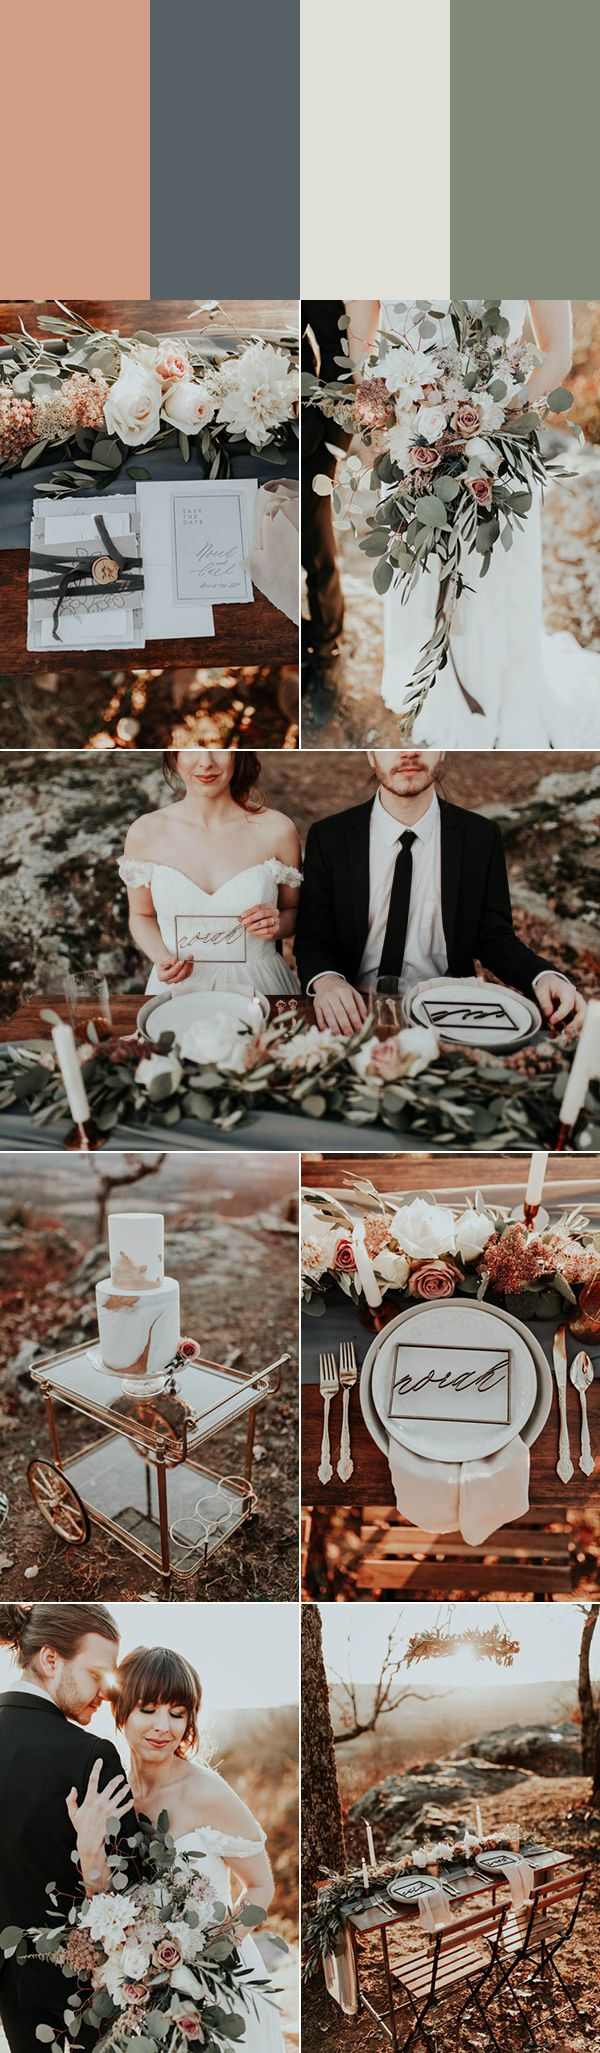 5 Sweet Spring Wedding Color Palette Ideas | Junebug Weddings